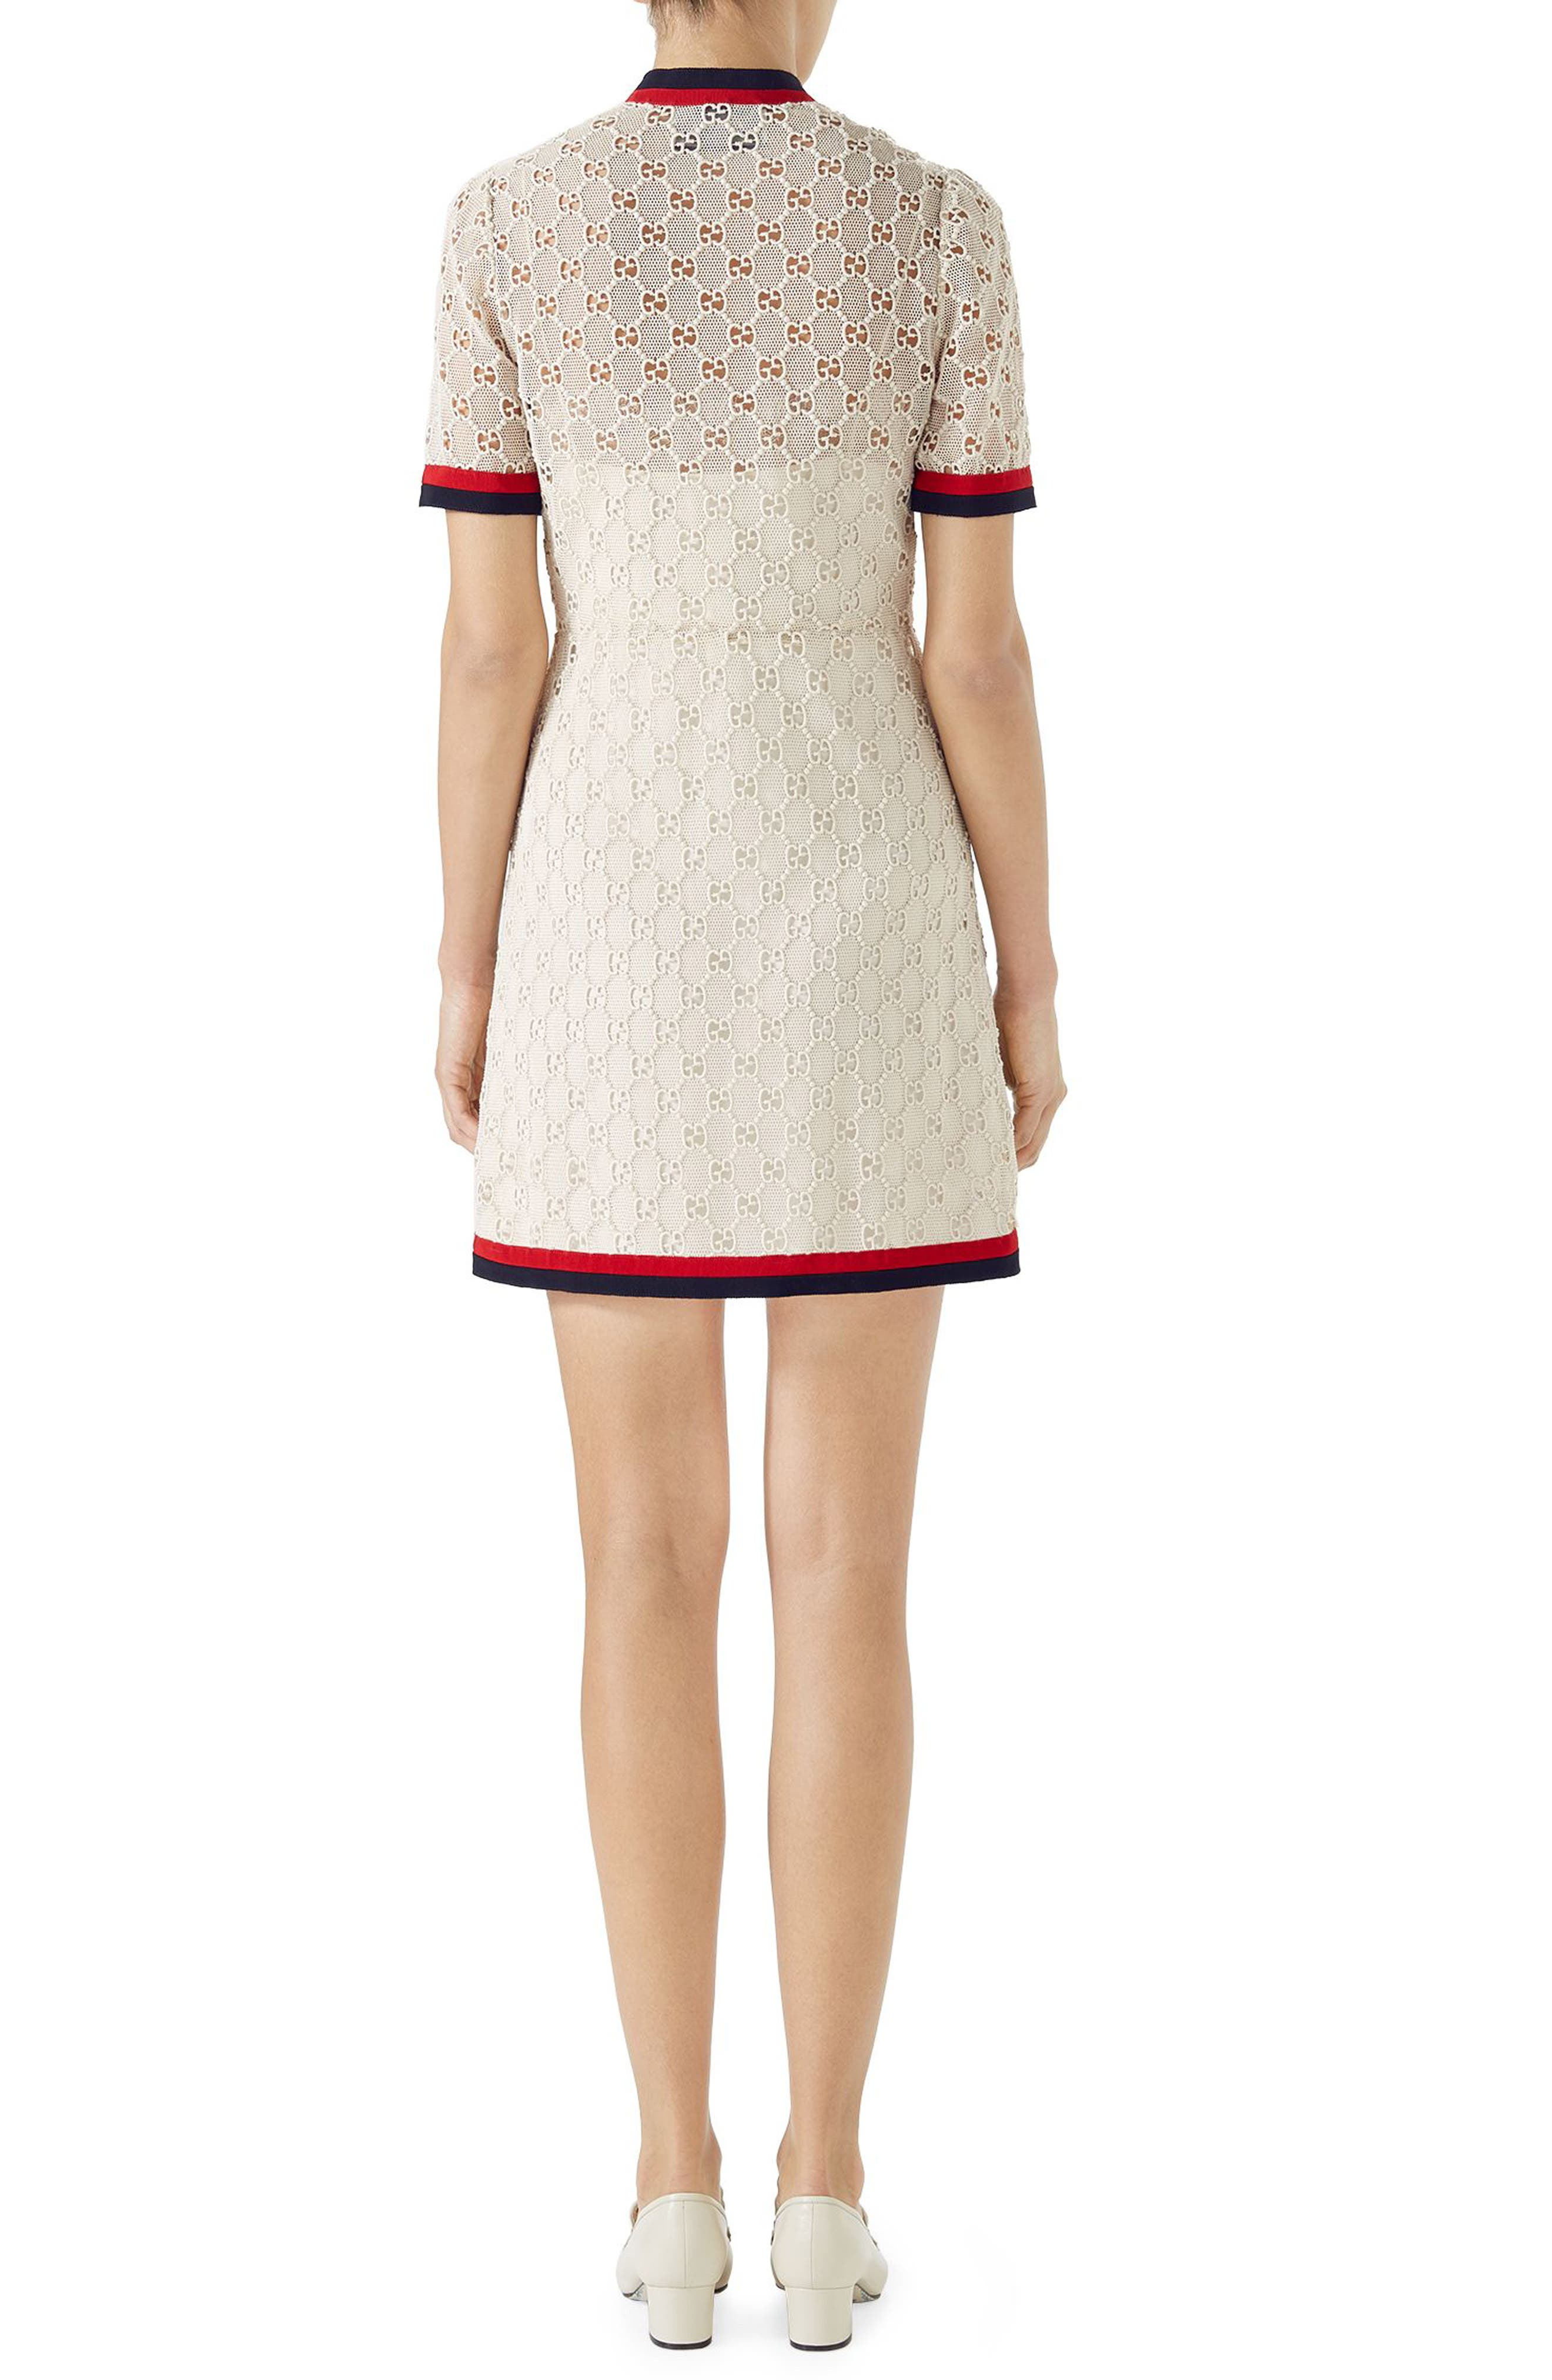 GG Macramé Dress,                             Alternate thumbnail 2, color,                             GARDENIA/ RED/ BK/ RED